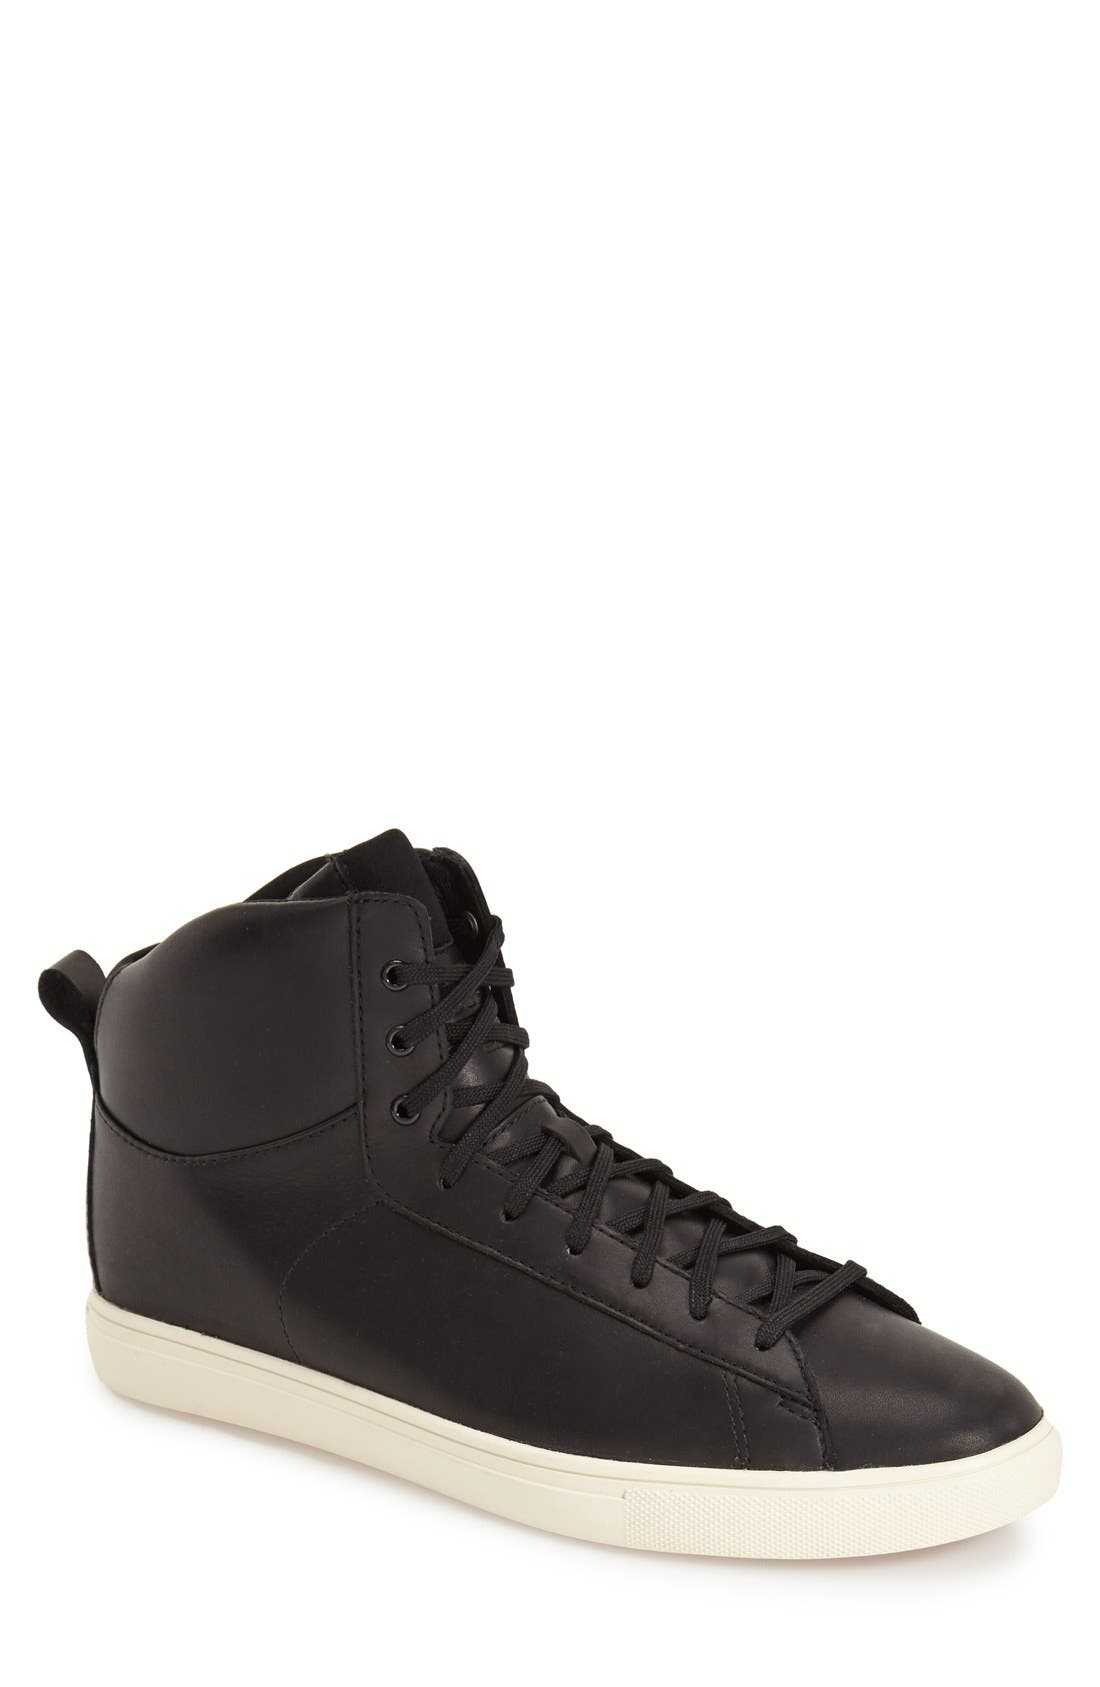 CLAE 'Frazier' High Top Sneaker